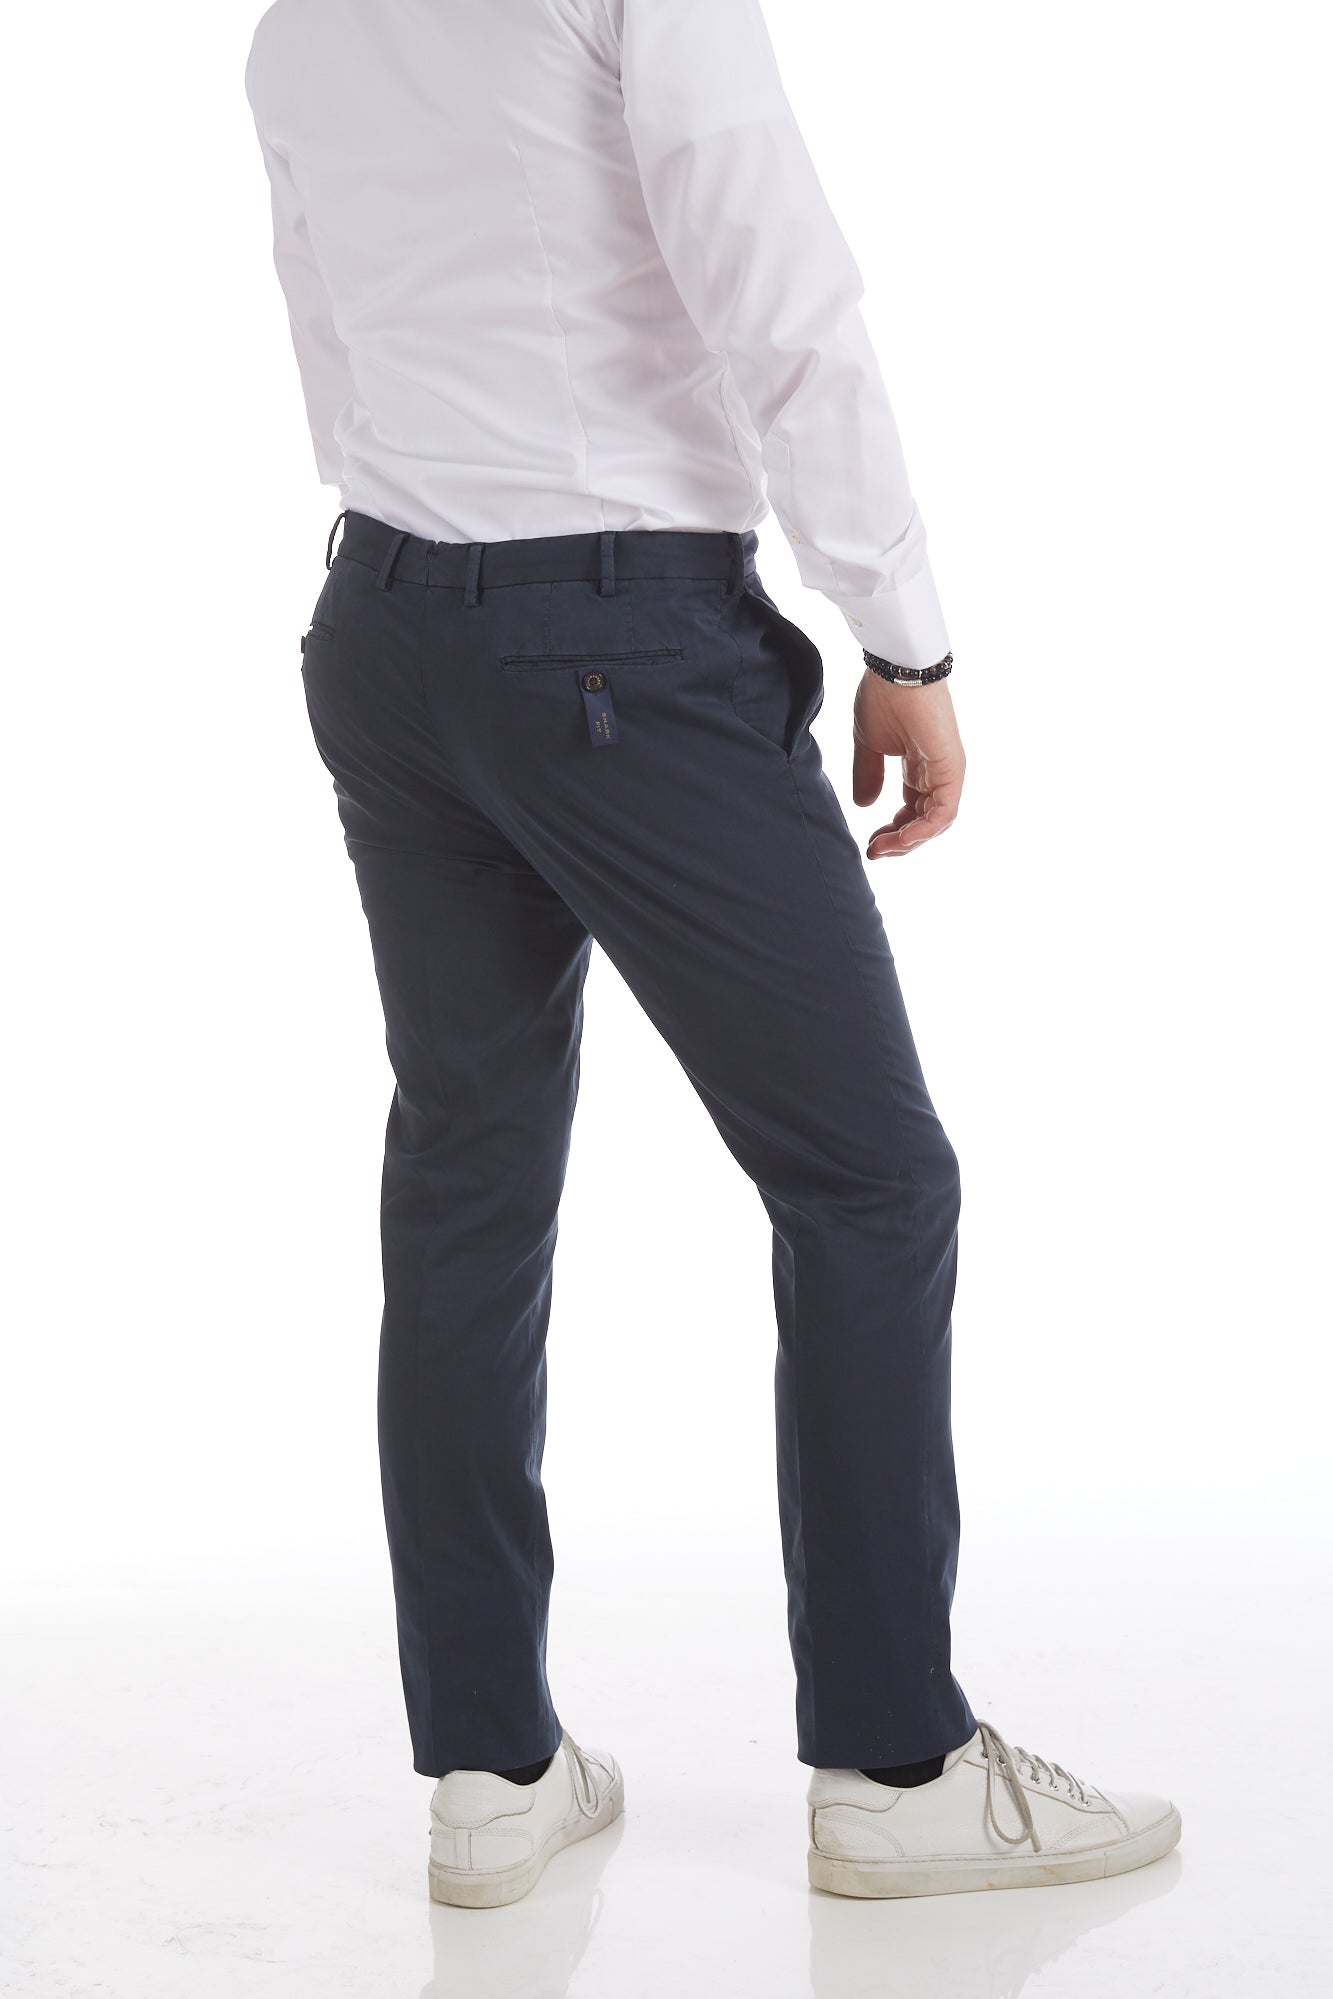 Paul & Shark Cotton-Silk Navy Stretch Chinos Back